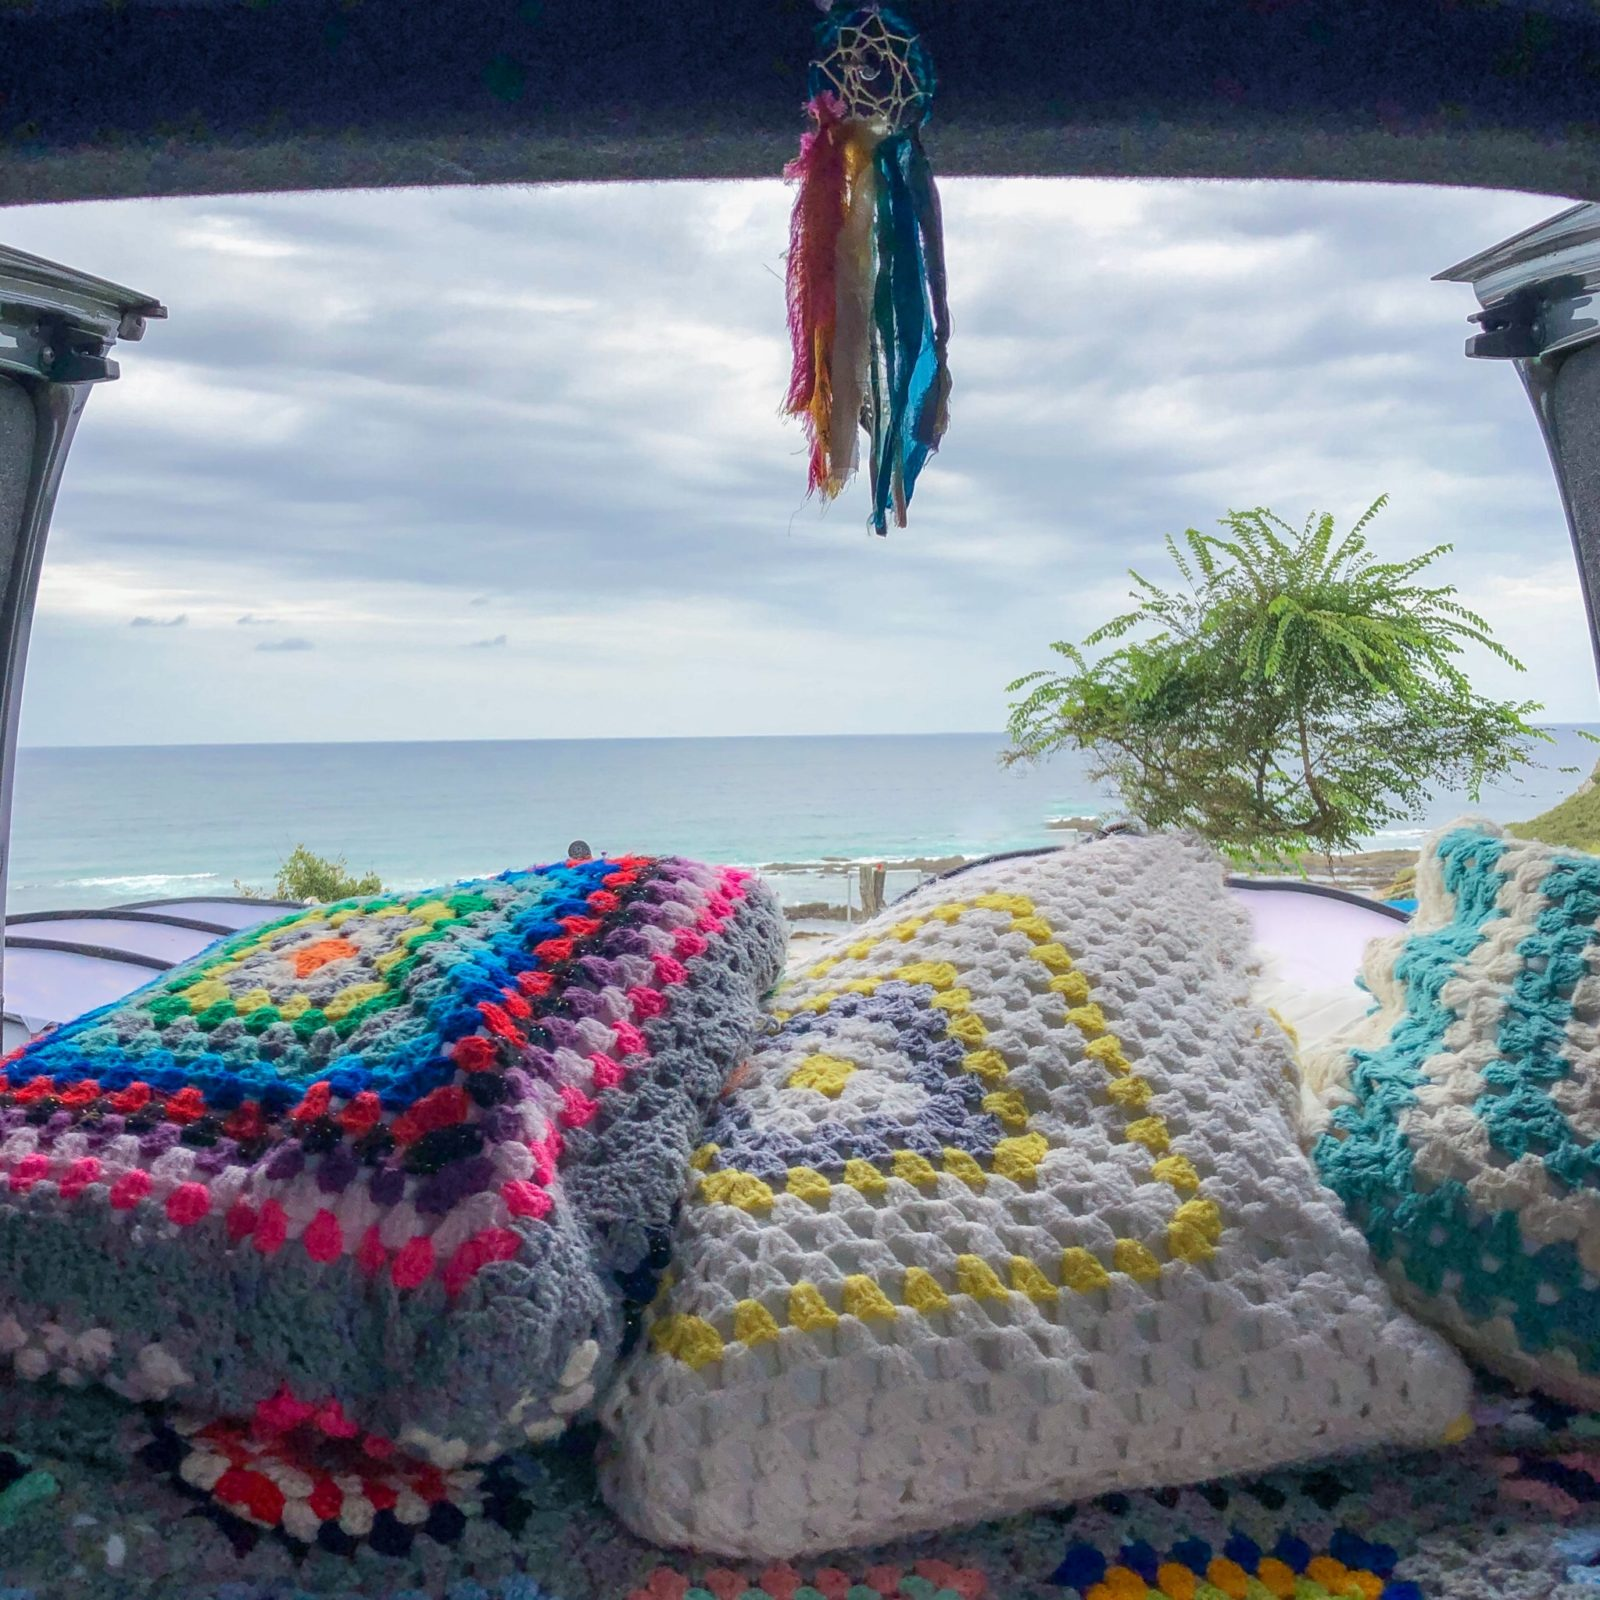 Van life essentials: What you might need for your next camper trip!